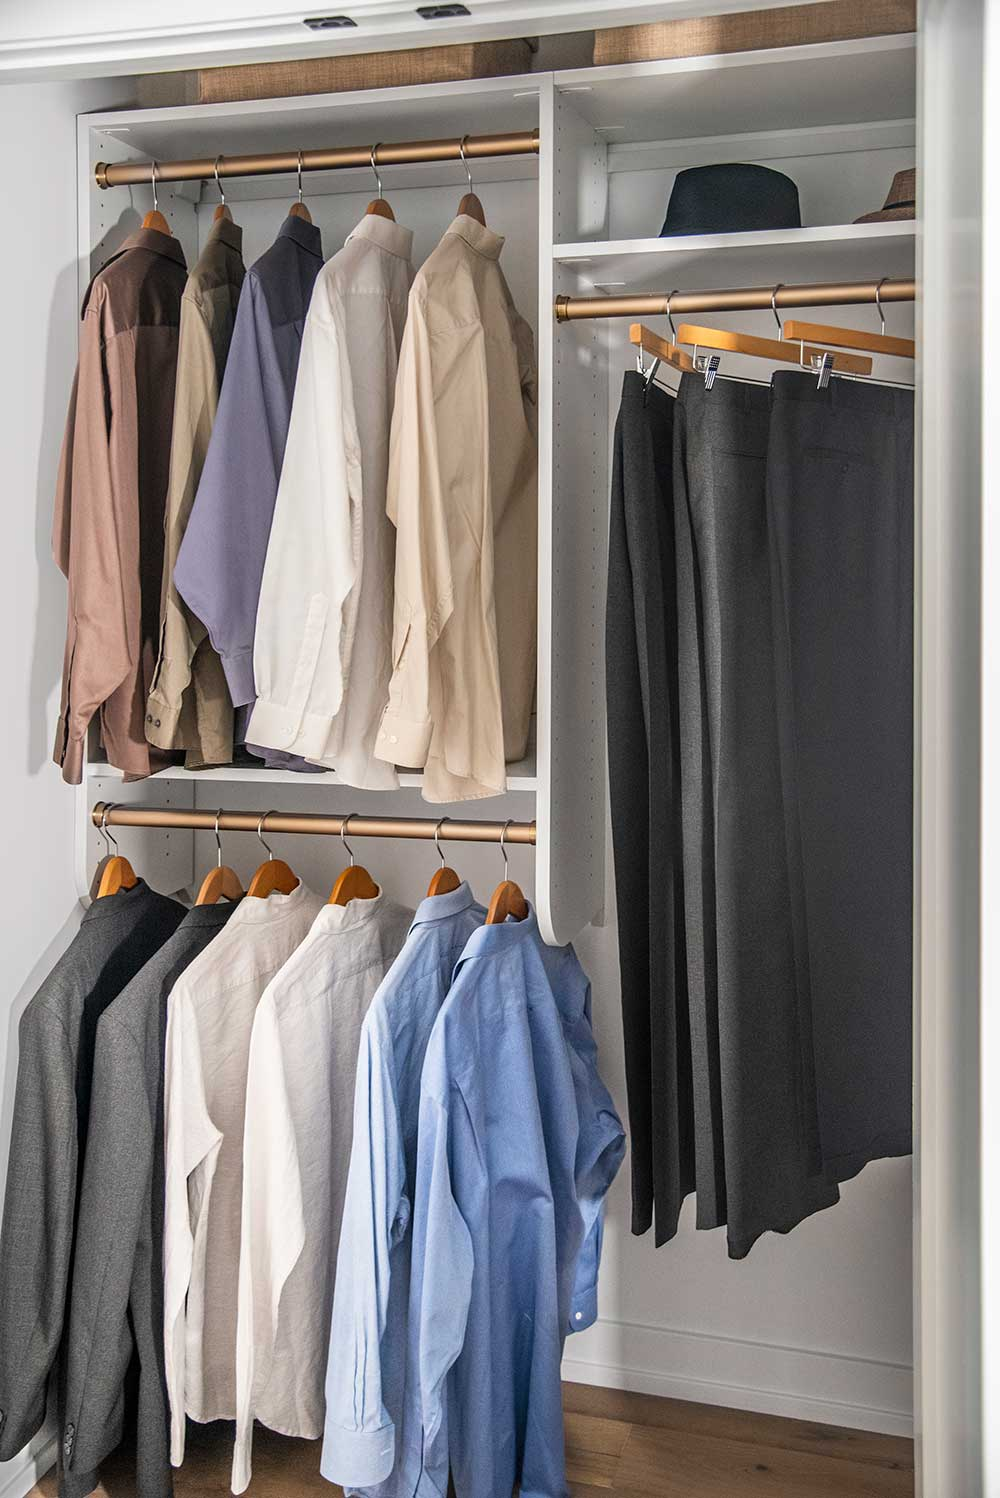 Reach-in closet with high quality wooden hangers